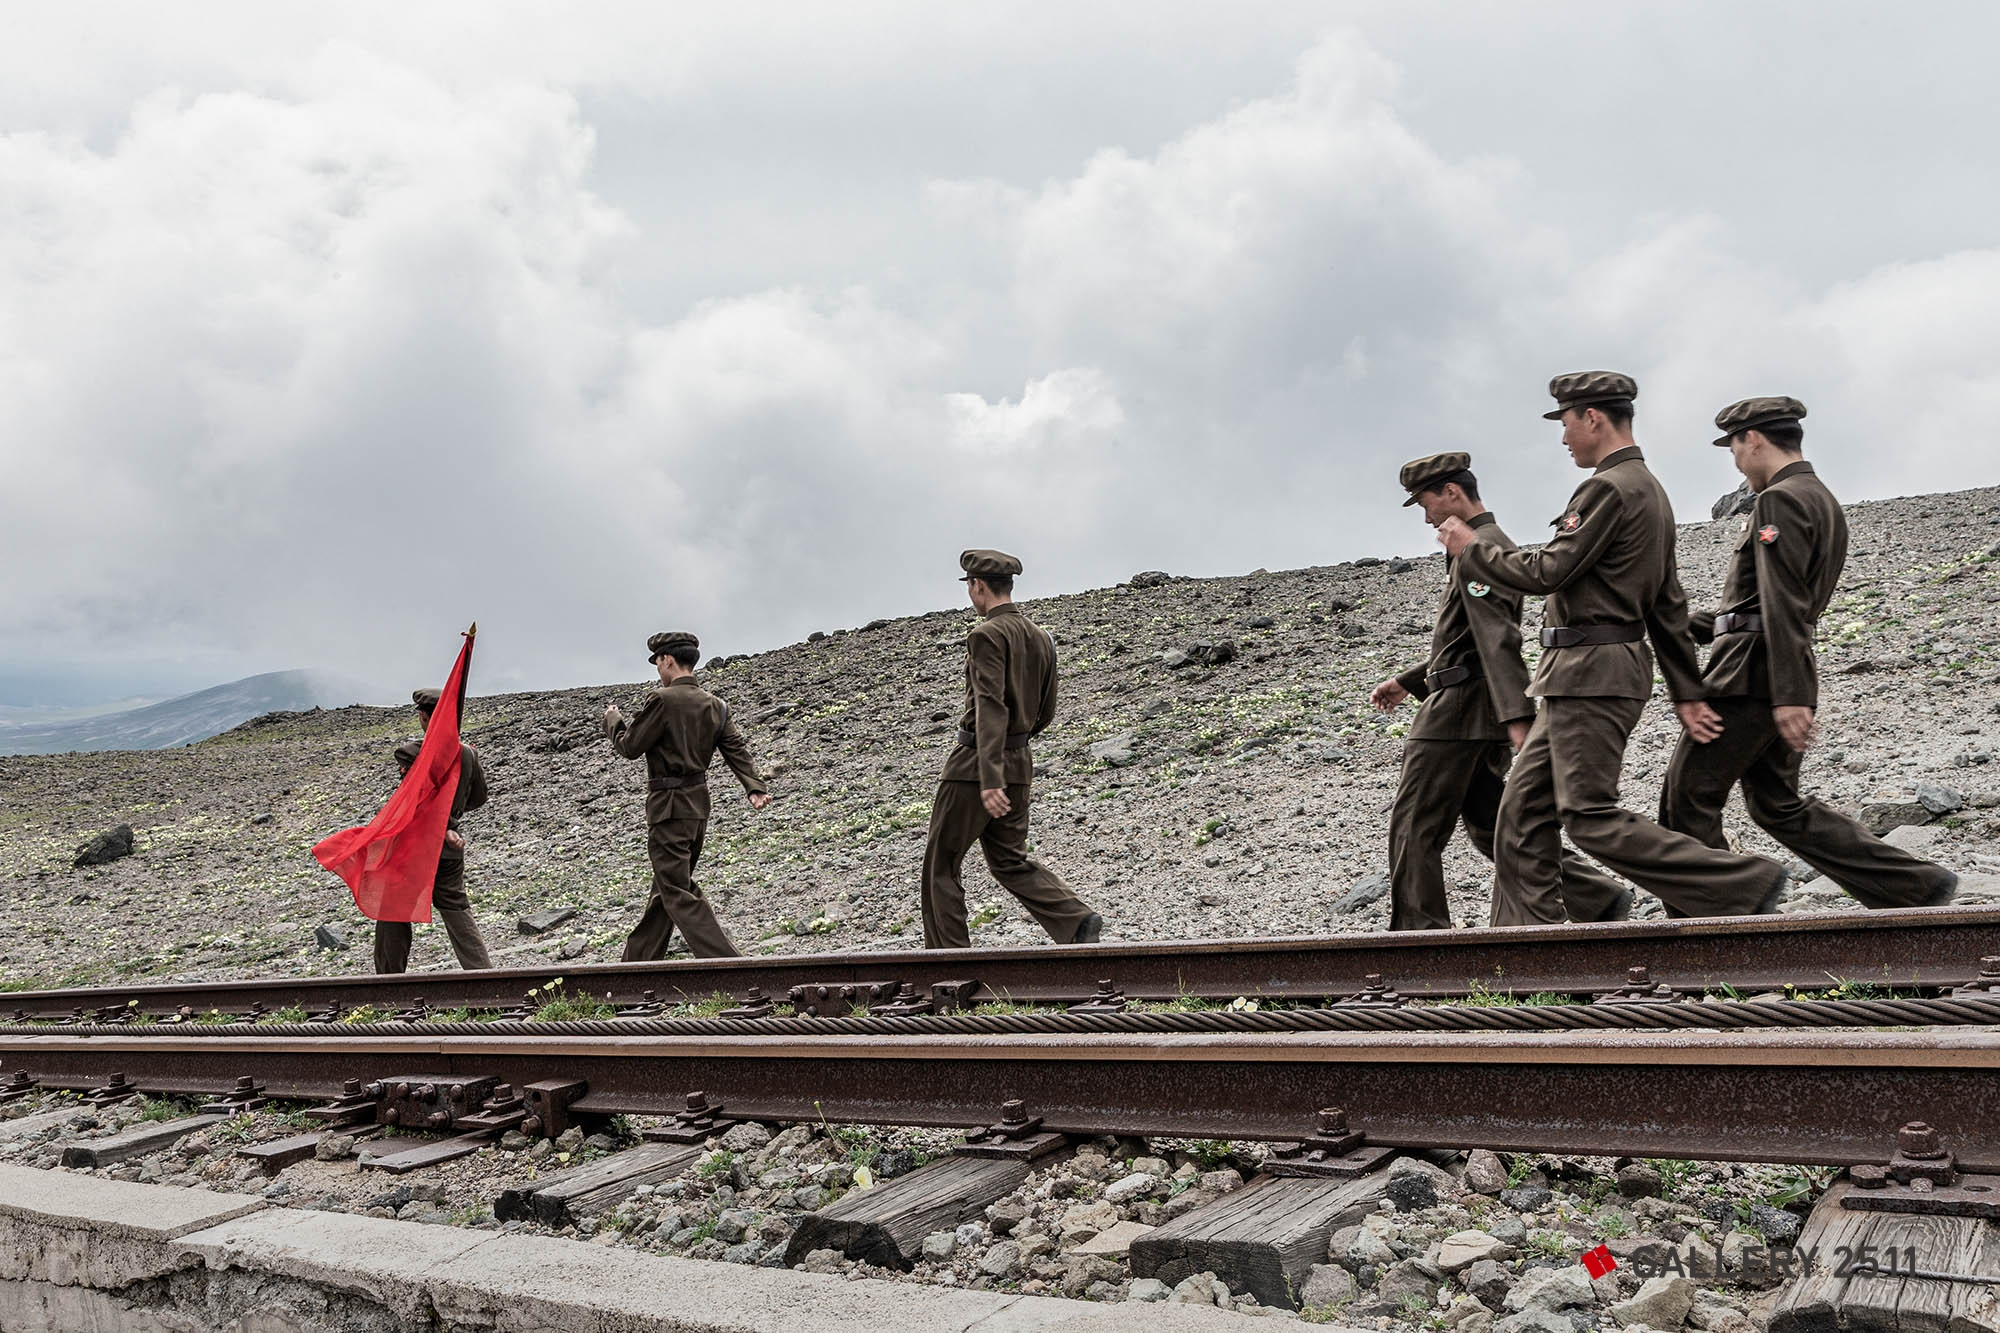 03.Soldiers walking along the railroad tracks 2015/07